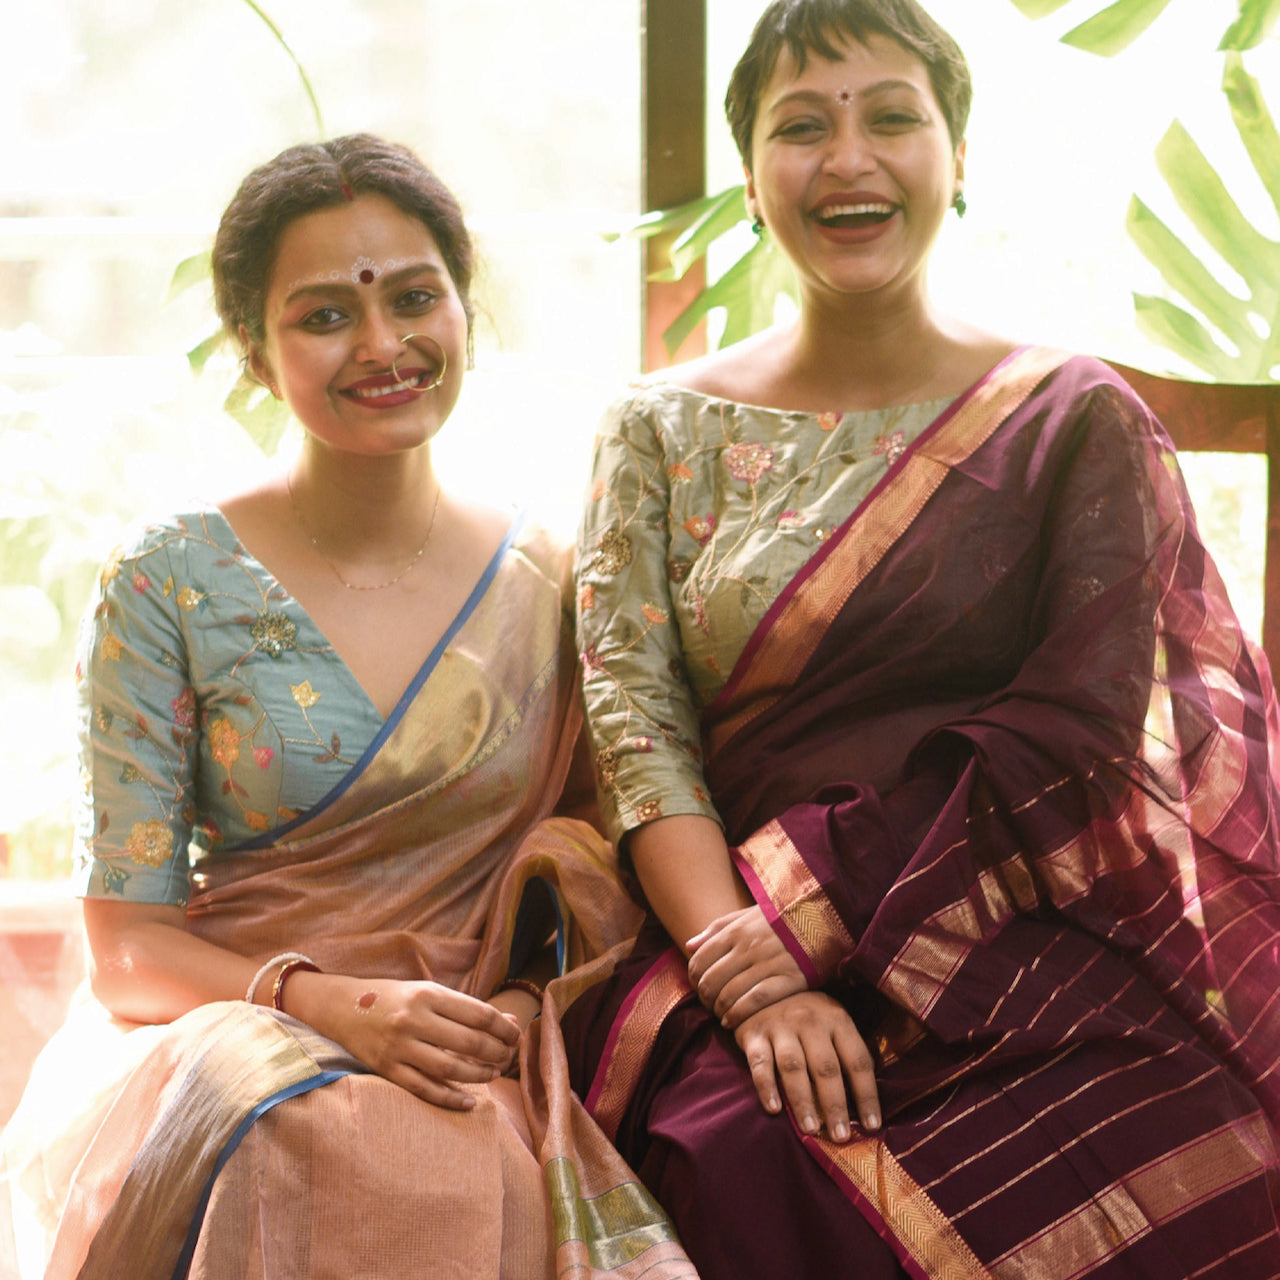 Sujata in a rose-colored saree, and Taniya in a maroon saree.